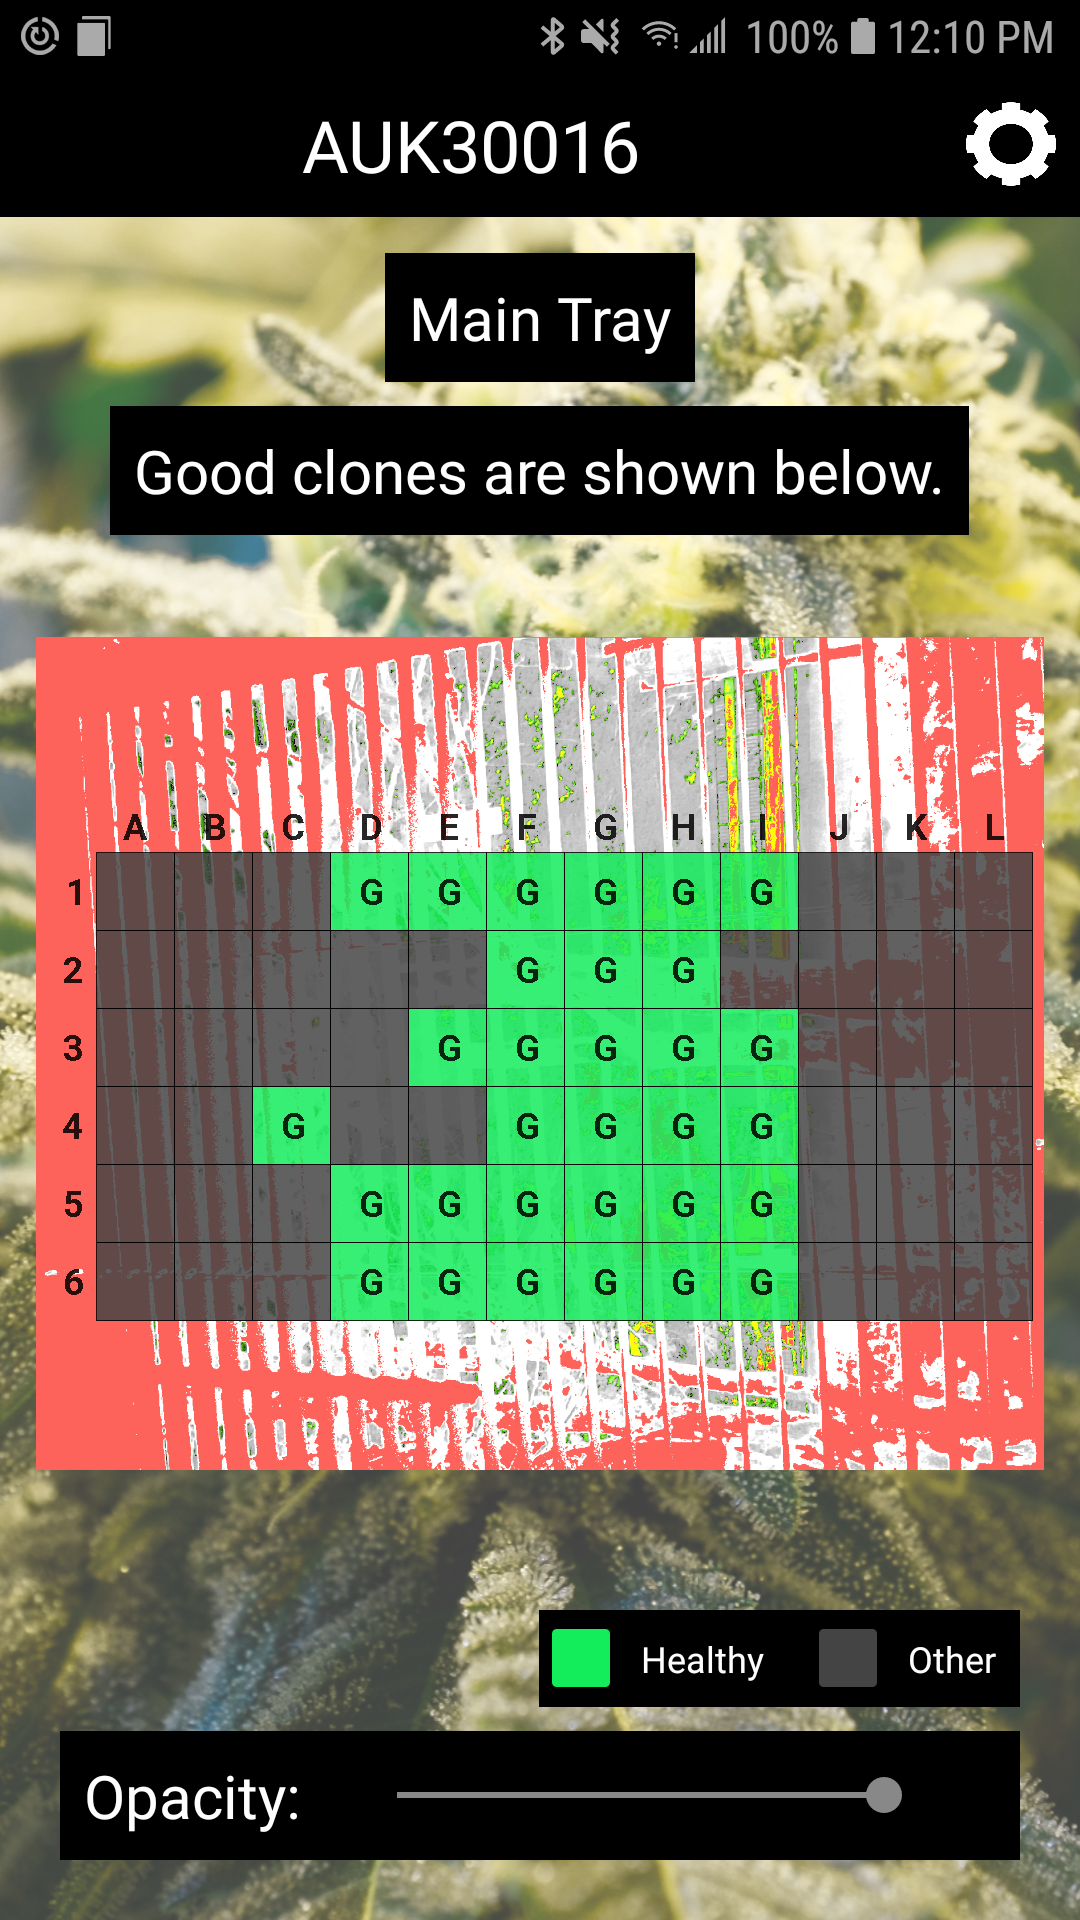 Clone Analysis - One touch and we tell you which clones are healthy